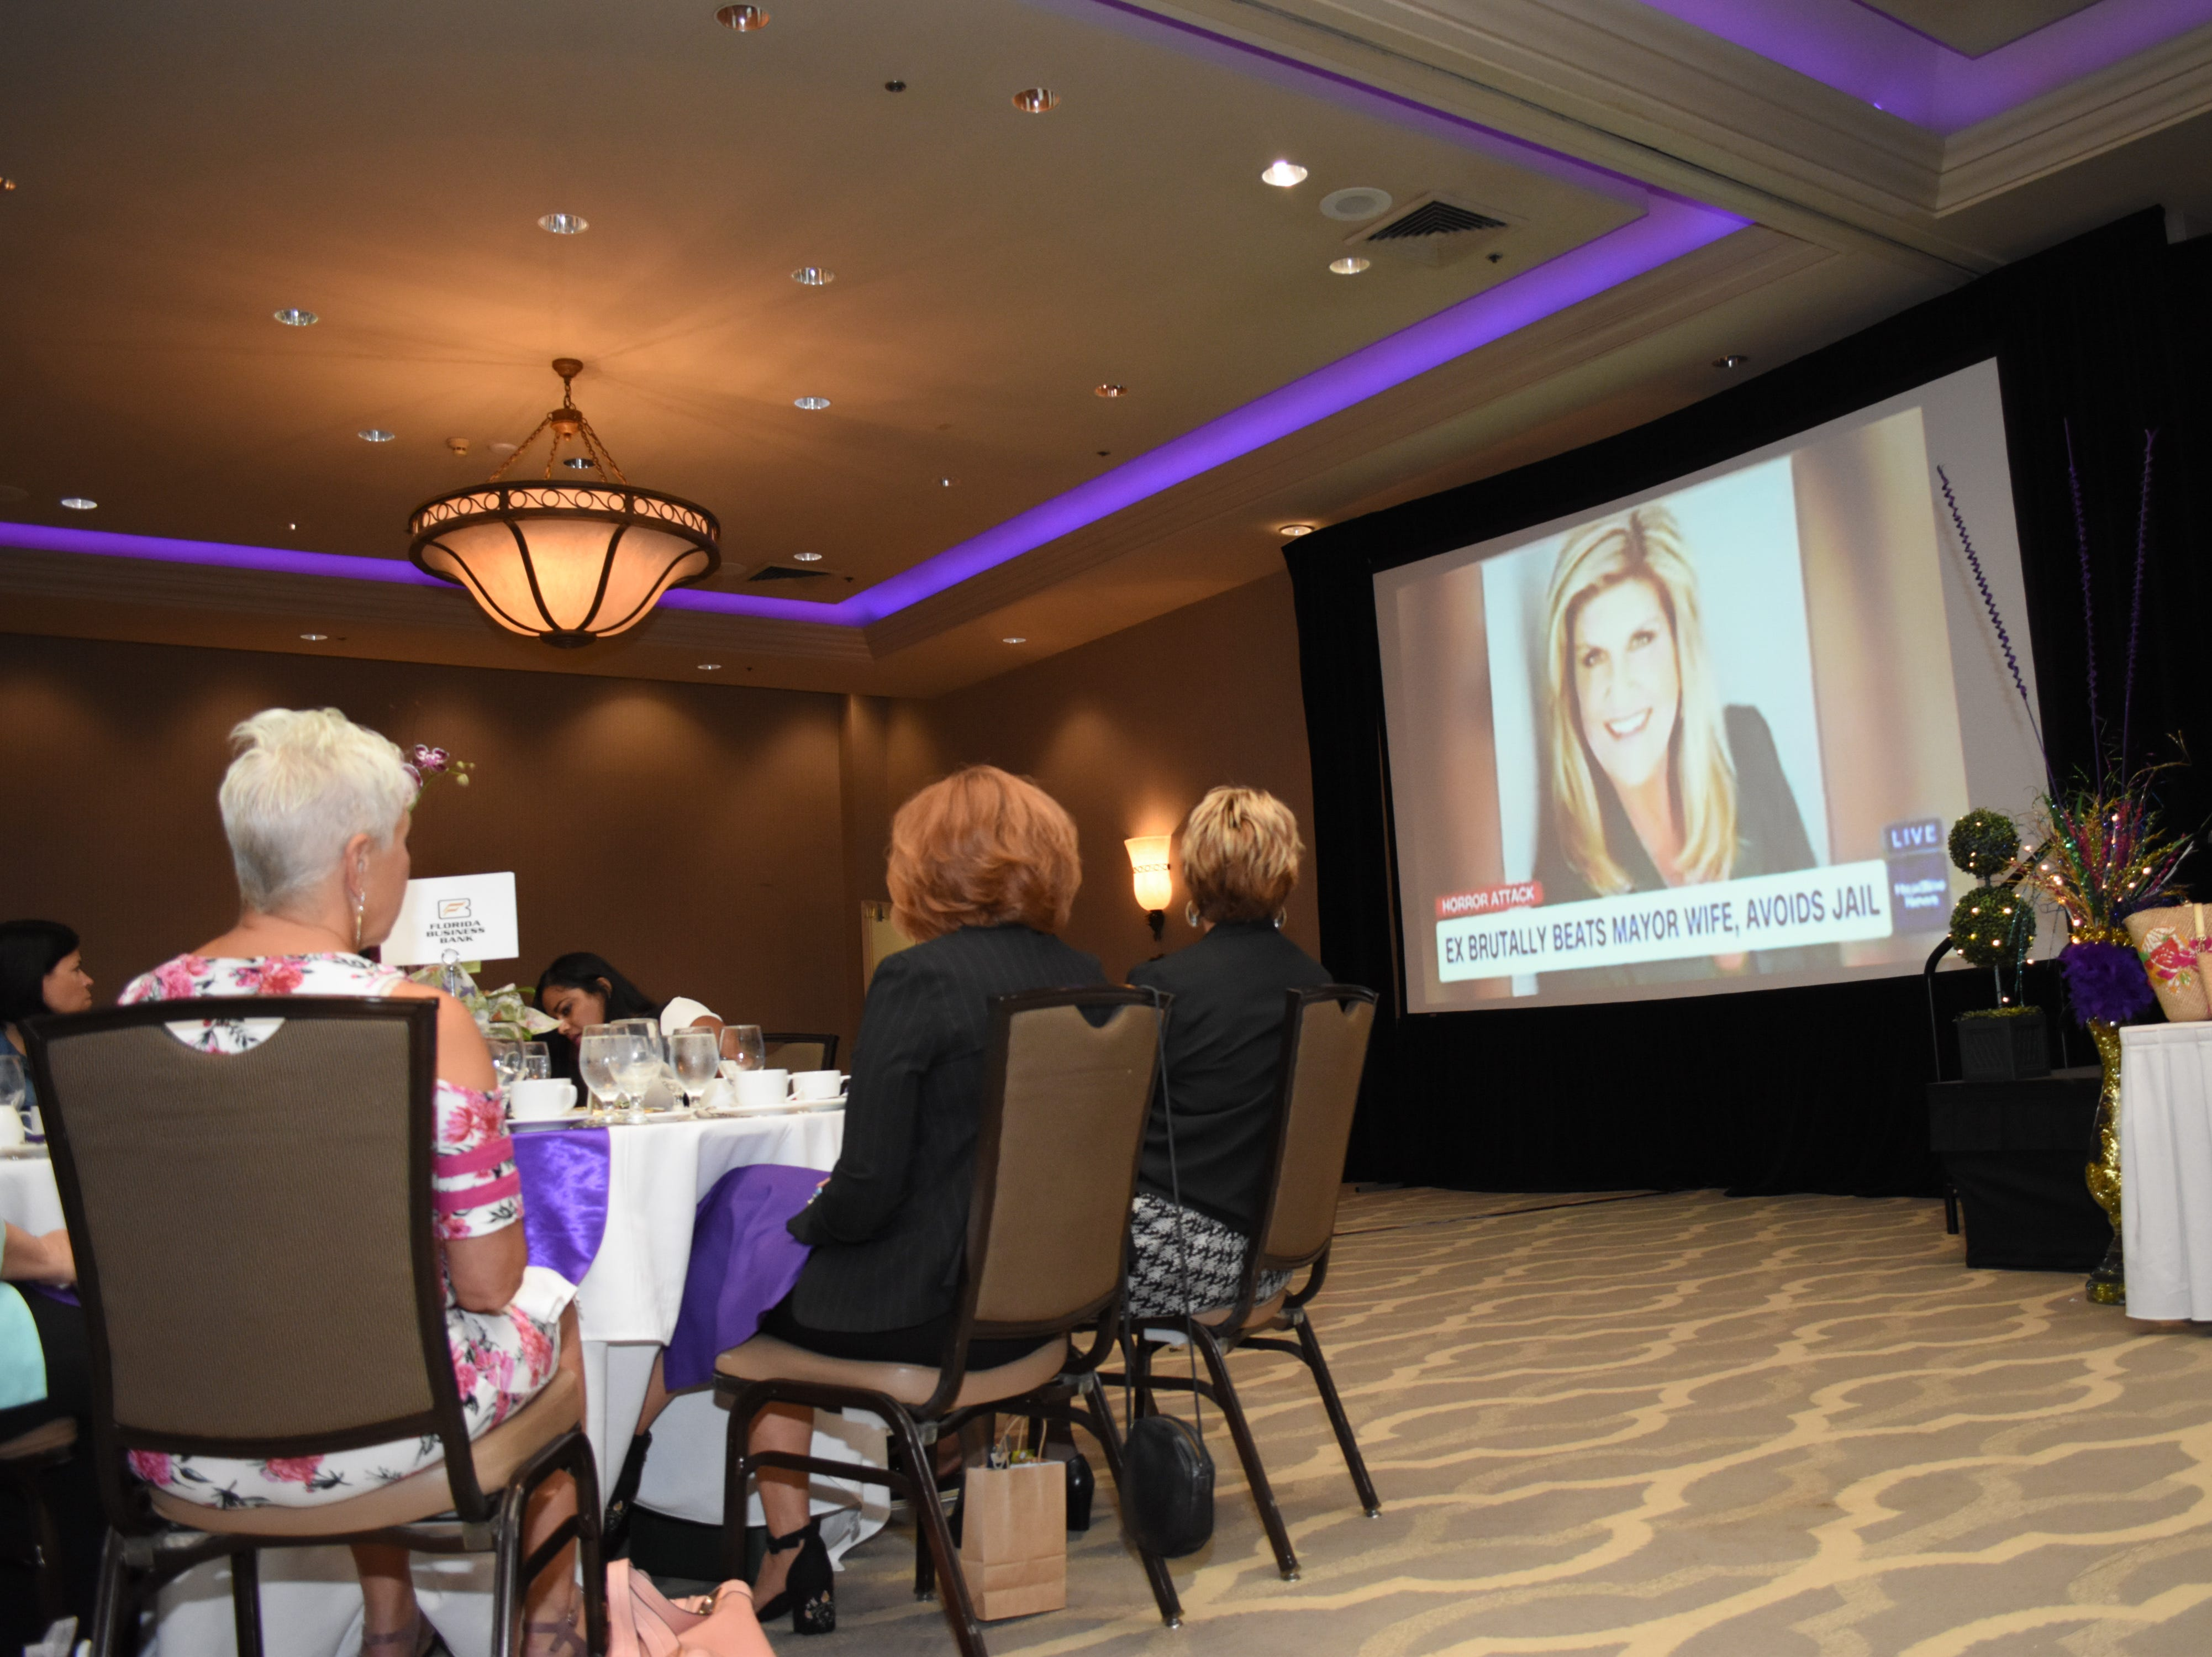 Guests watch a video about Former mayor of Cape Coral Marni Sawicki's experience with domestic abuse.